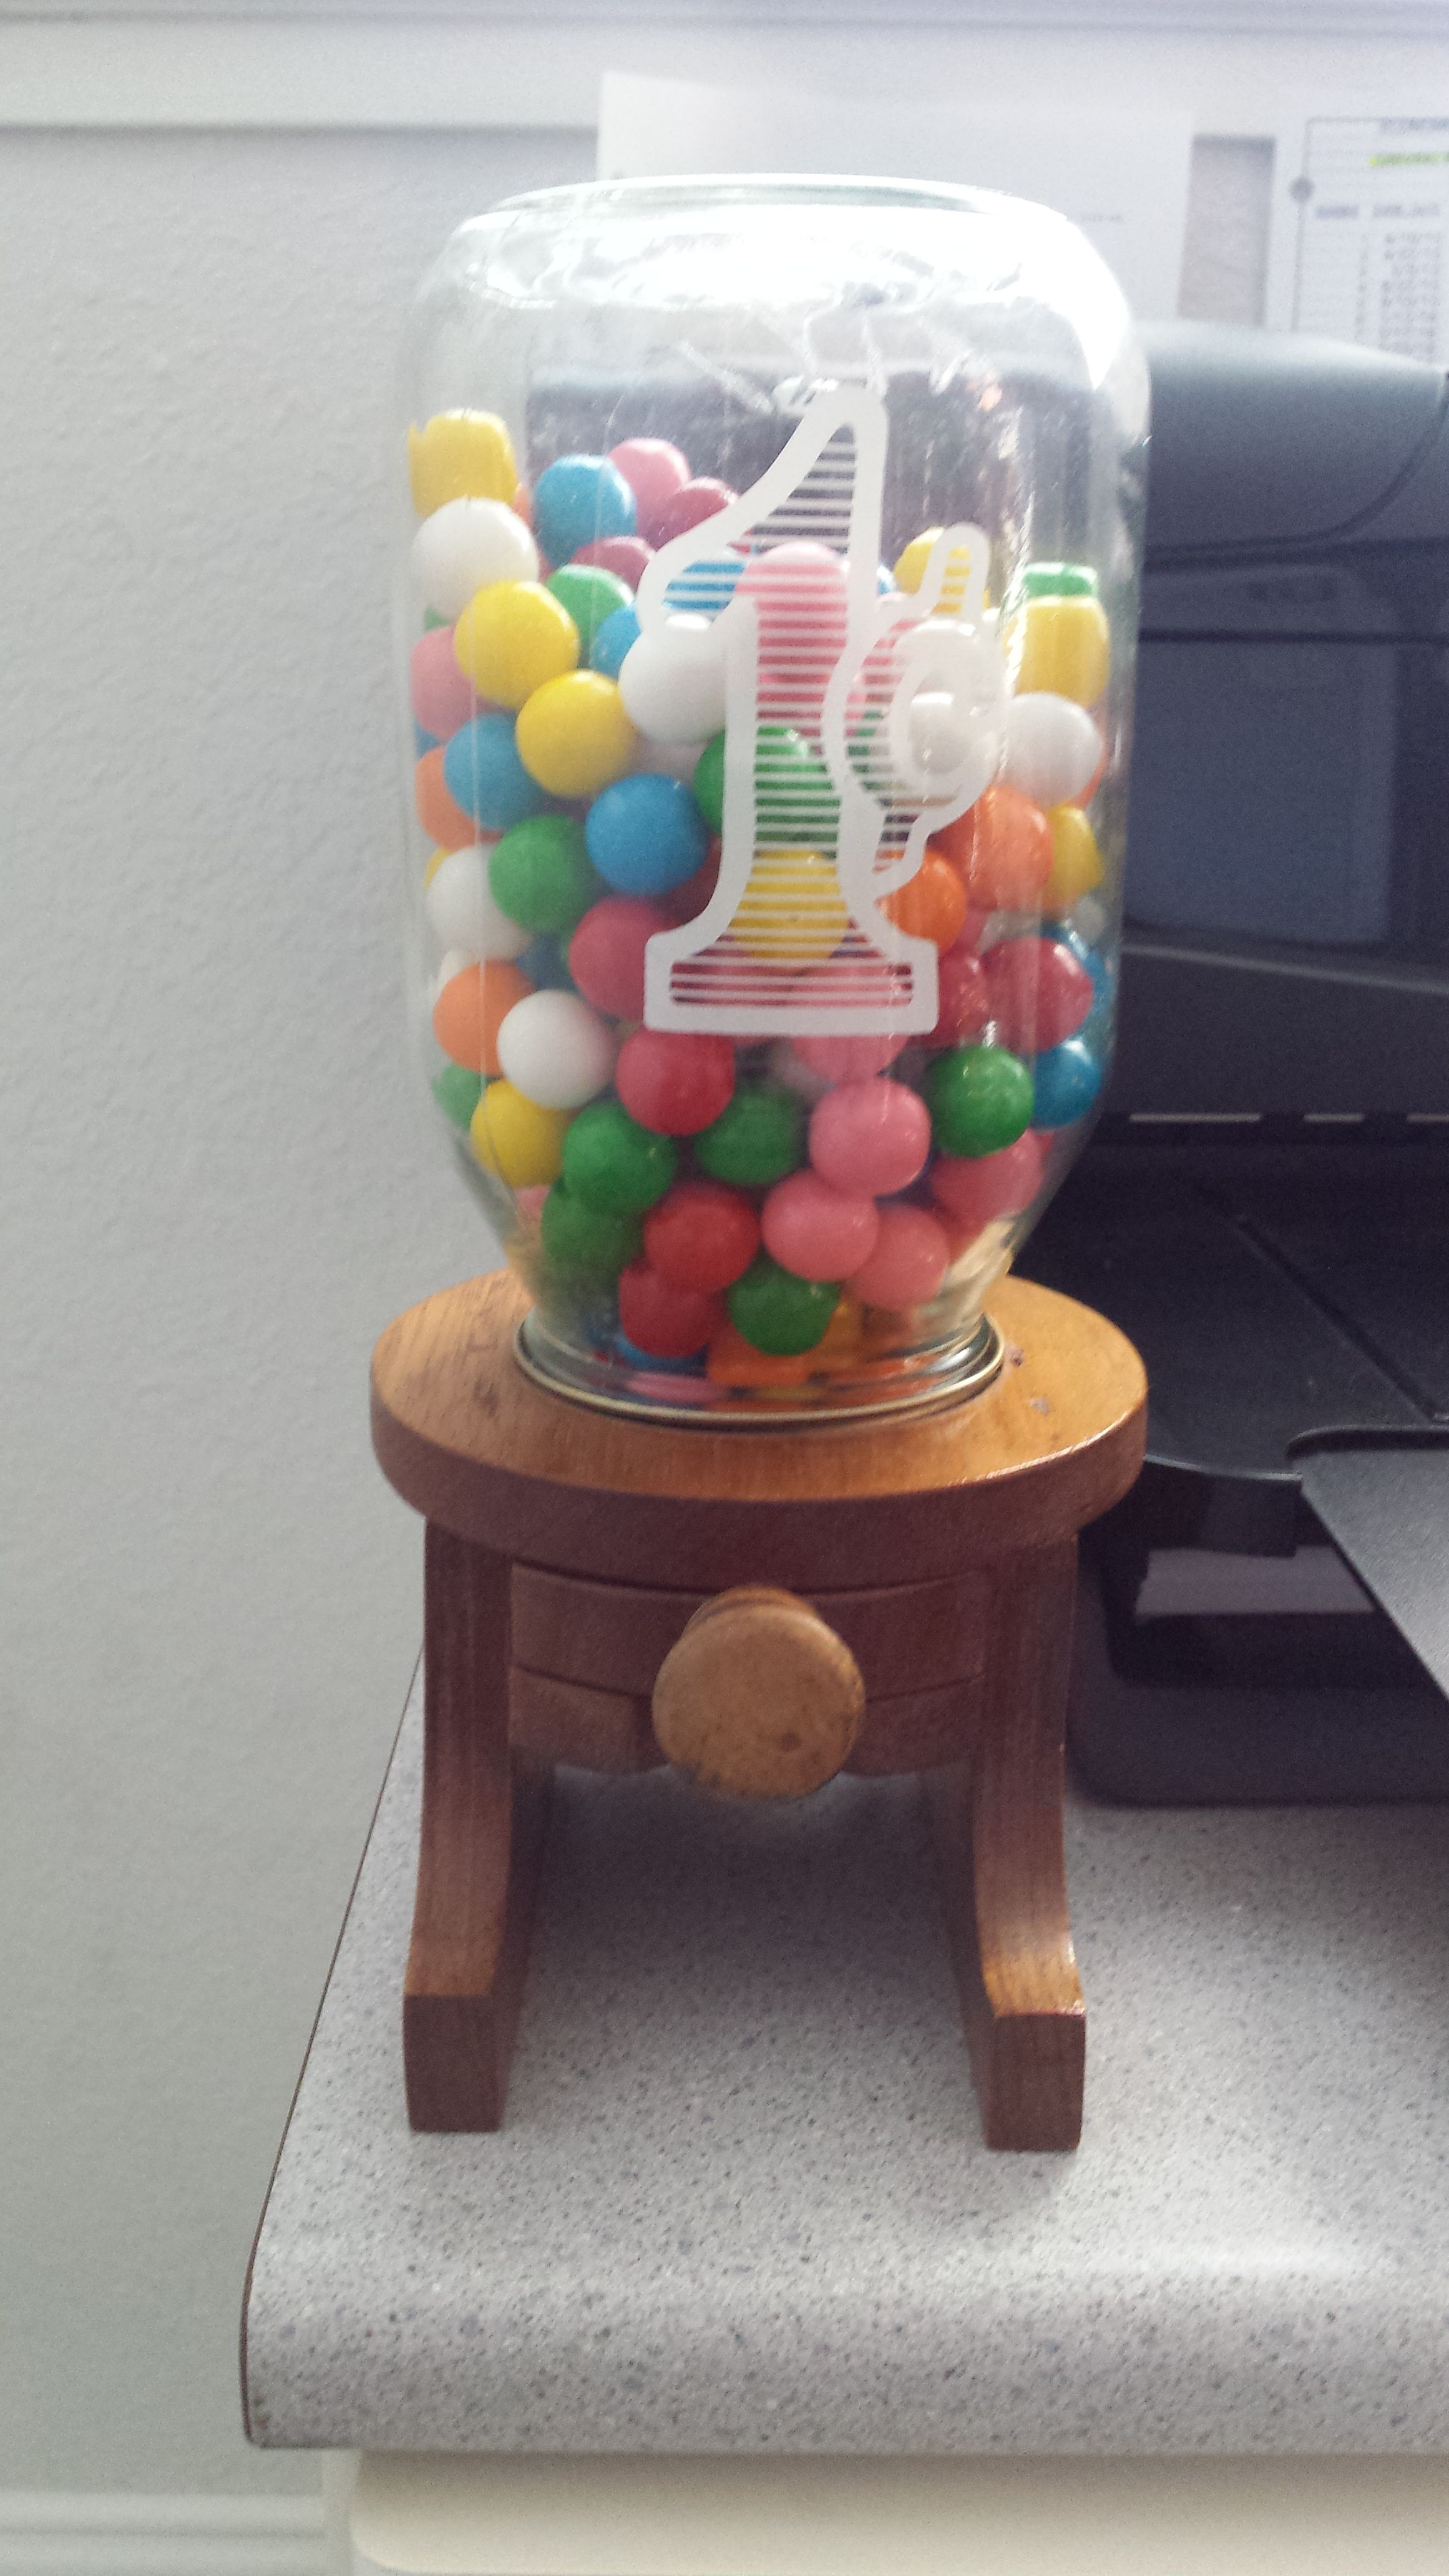 Picture of Gumball Machine